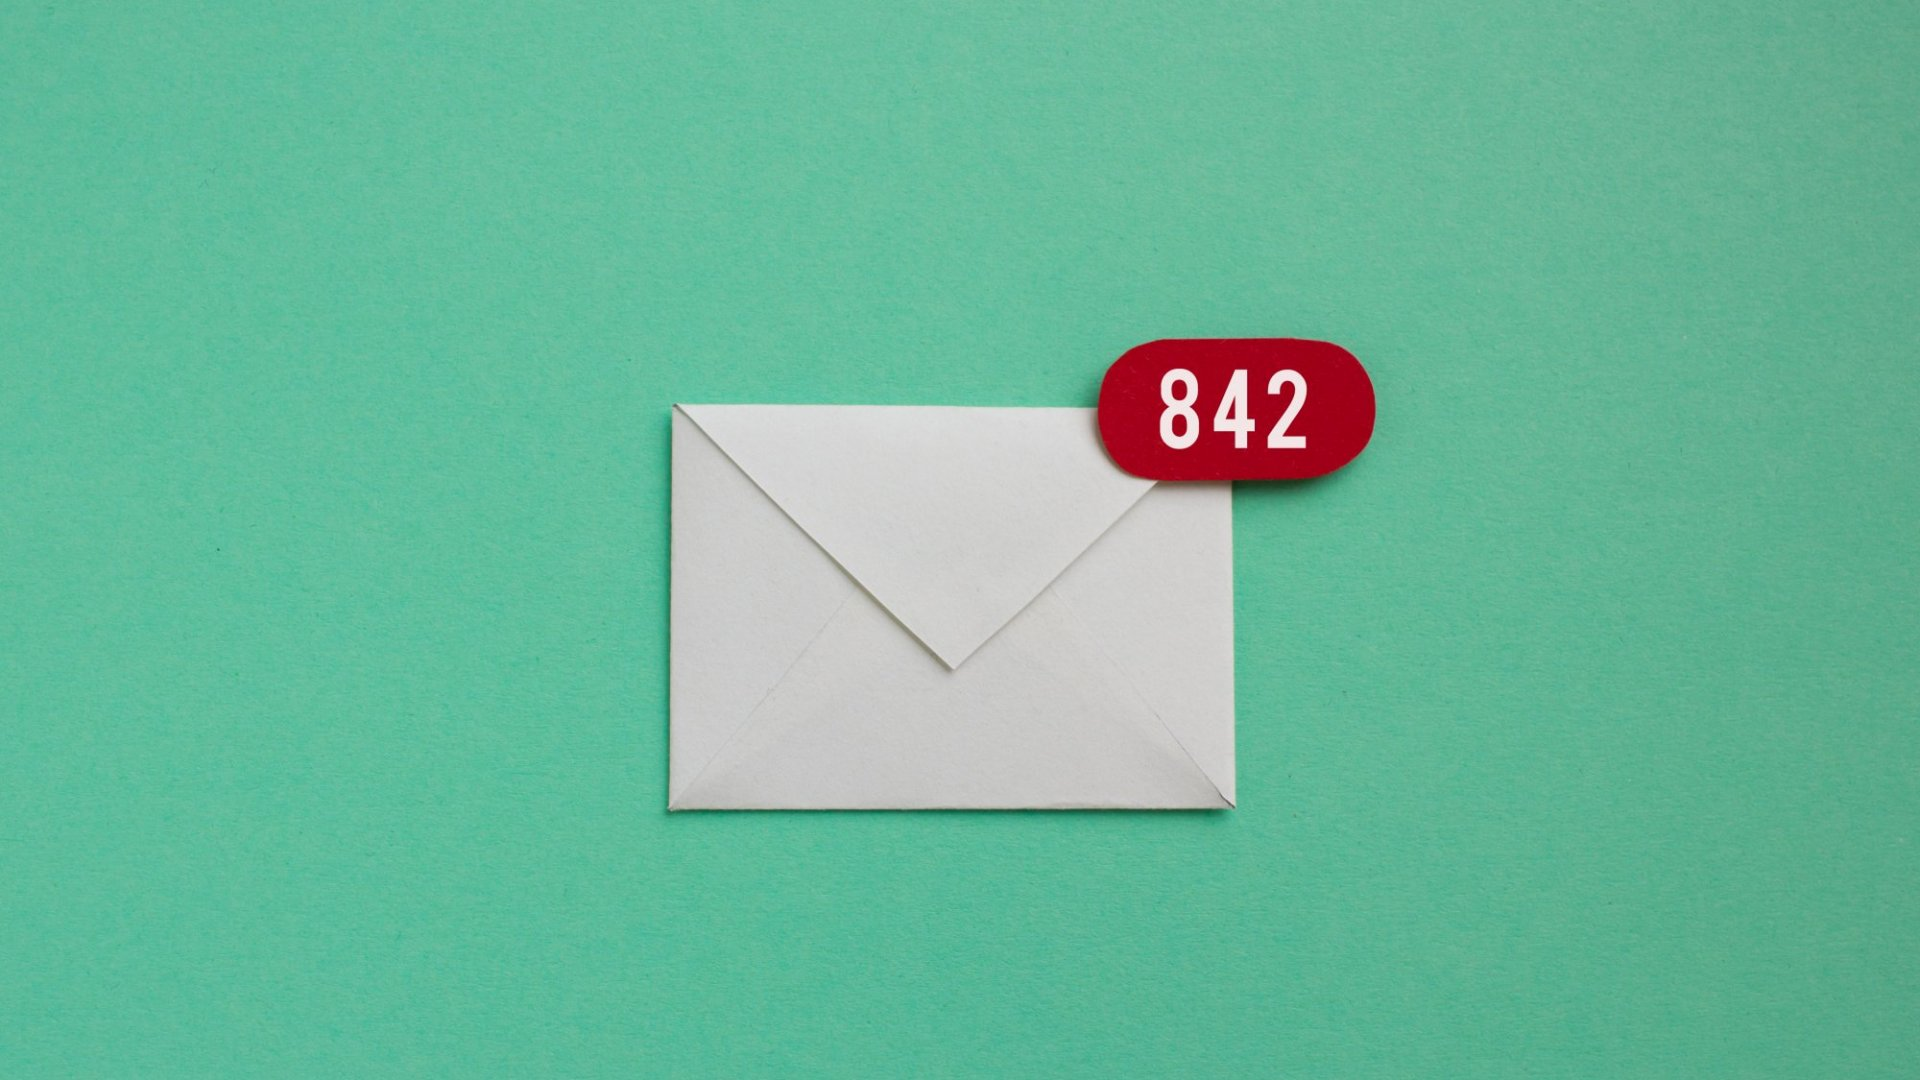 4 Strategies to Improve Your Email Productivity